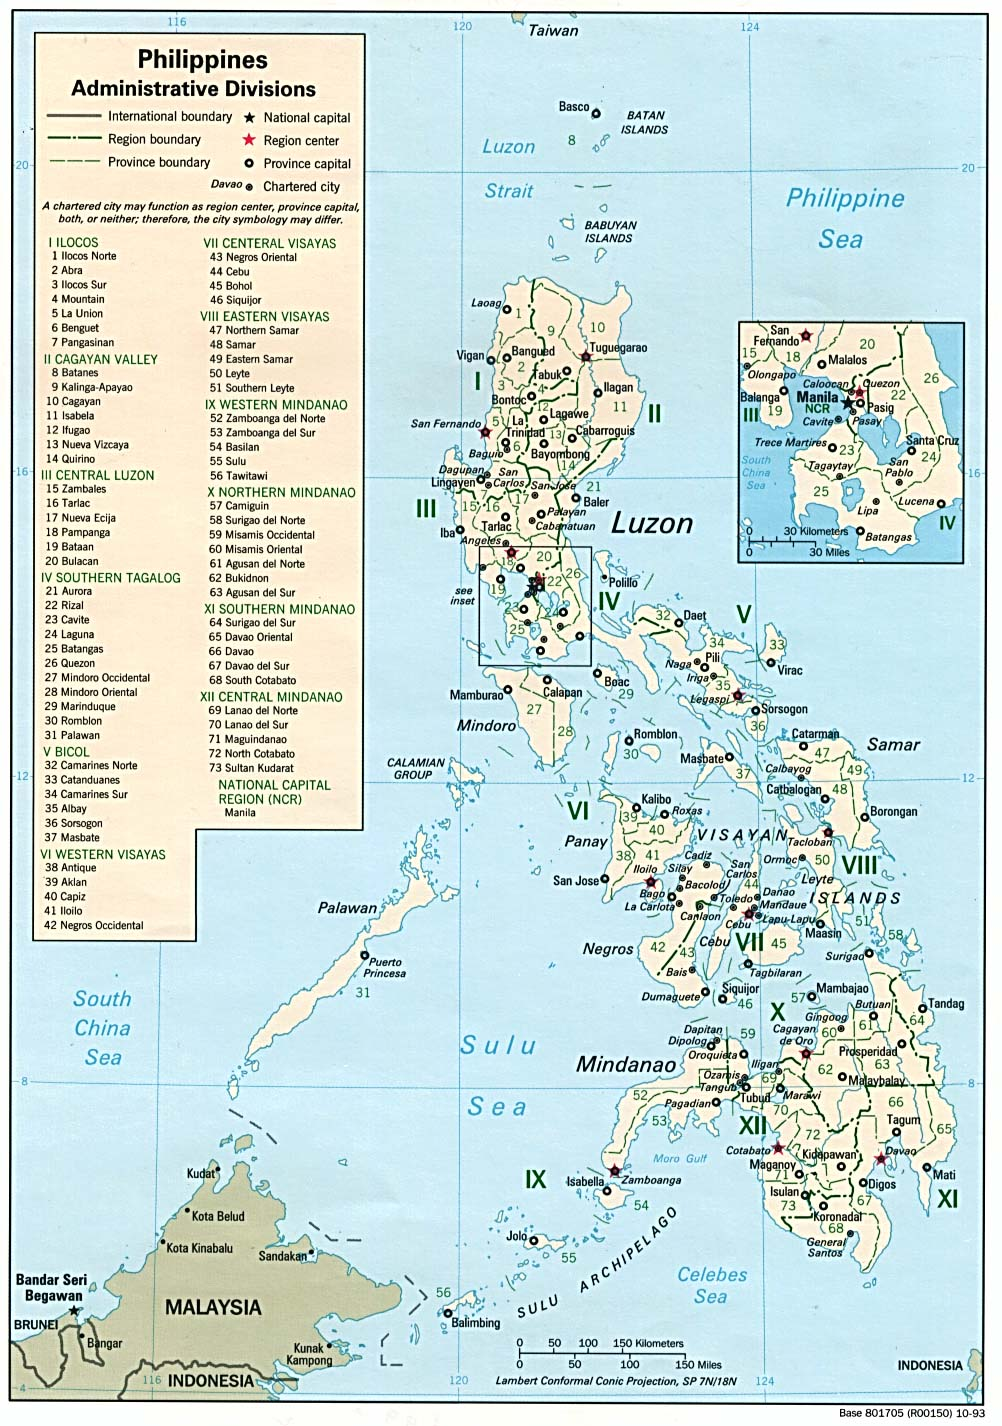 geography of the philippines The philippines is an archipelago that consists of 7,107 islands with a total land area of 301,780 square kilometers (116,518 sq mi) the 11 largest islands contain.